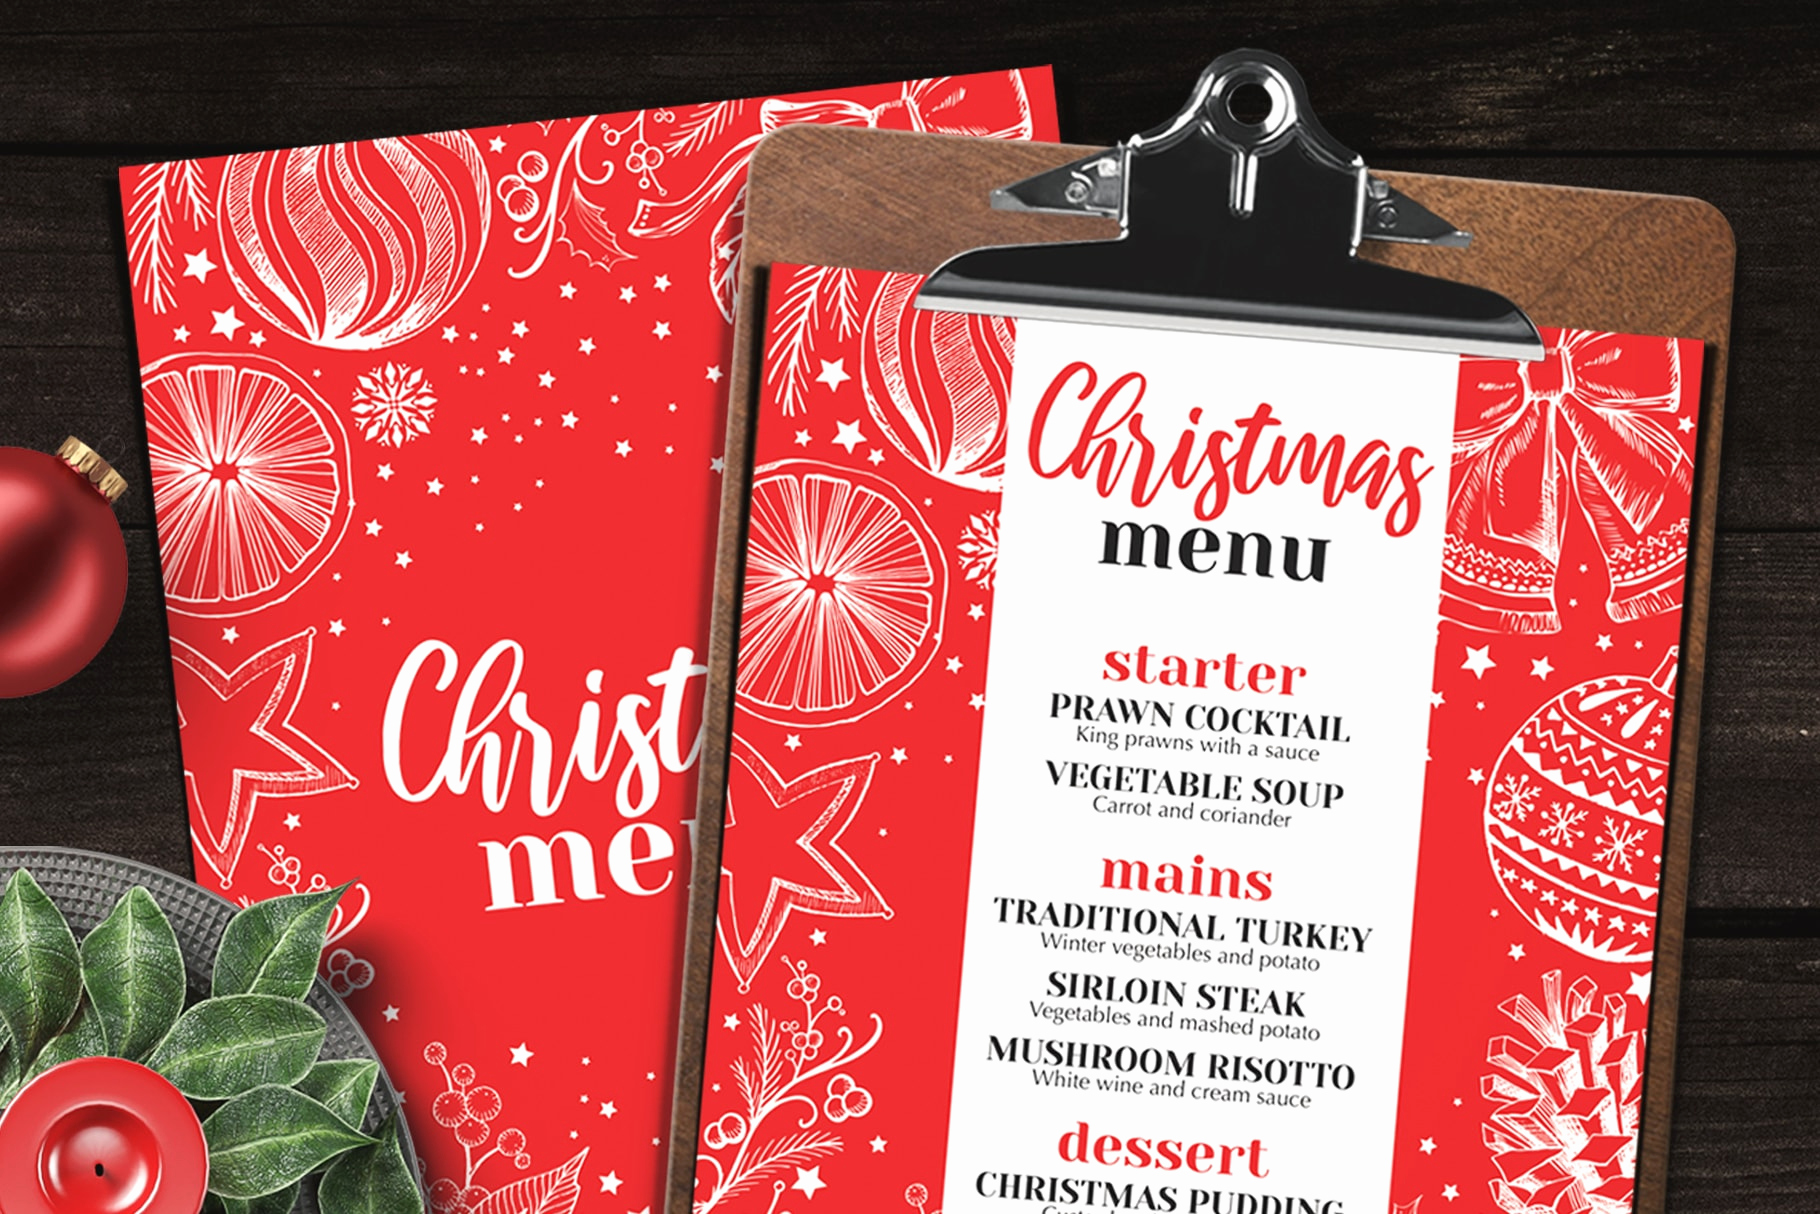 Dinner Menu Template Free Best Of 10 Best Christmas Restaurant Menu Templates Barcelona